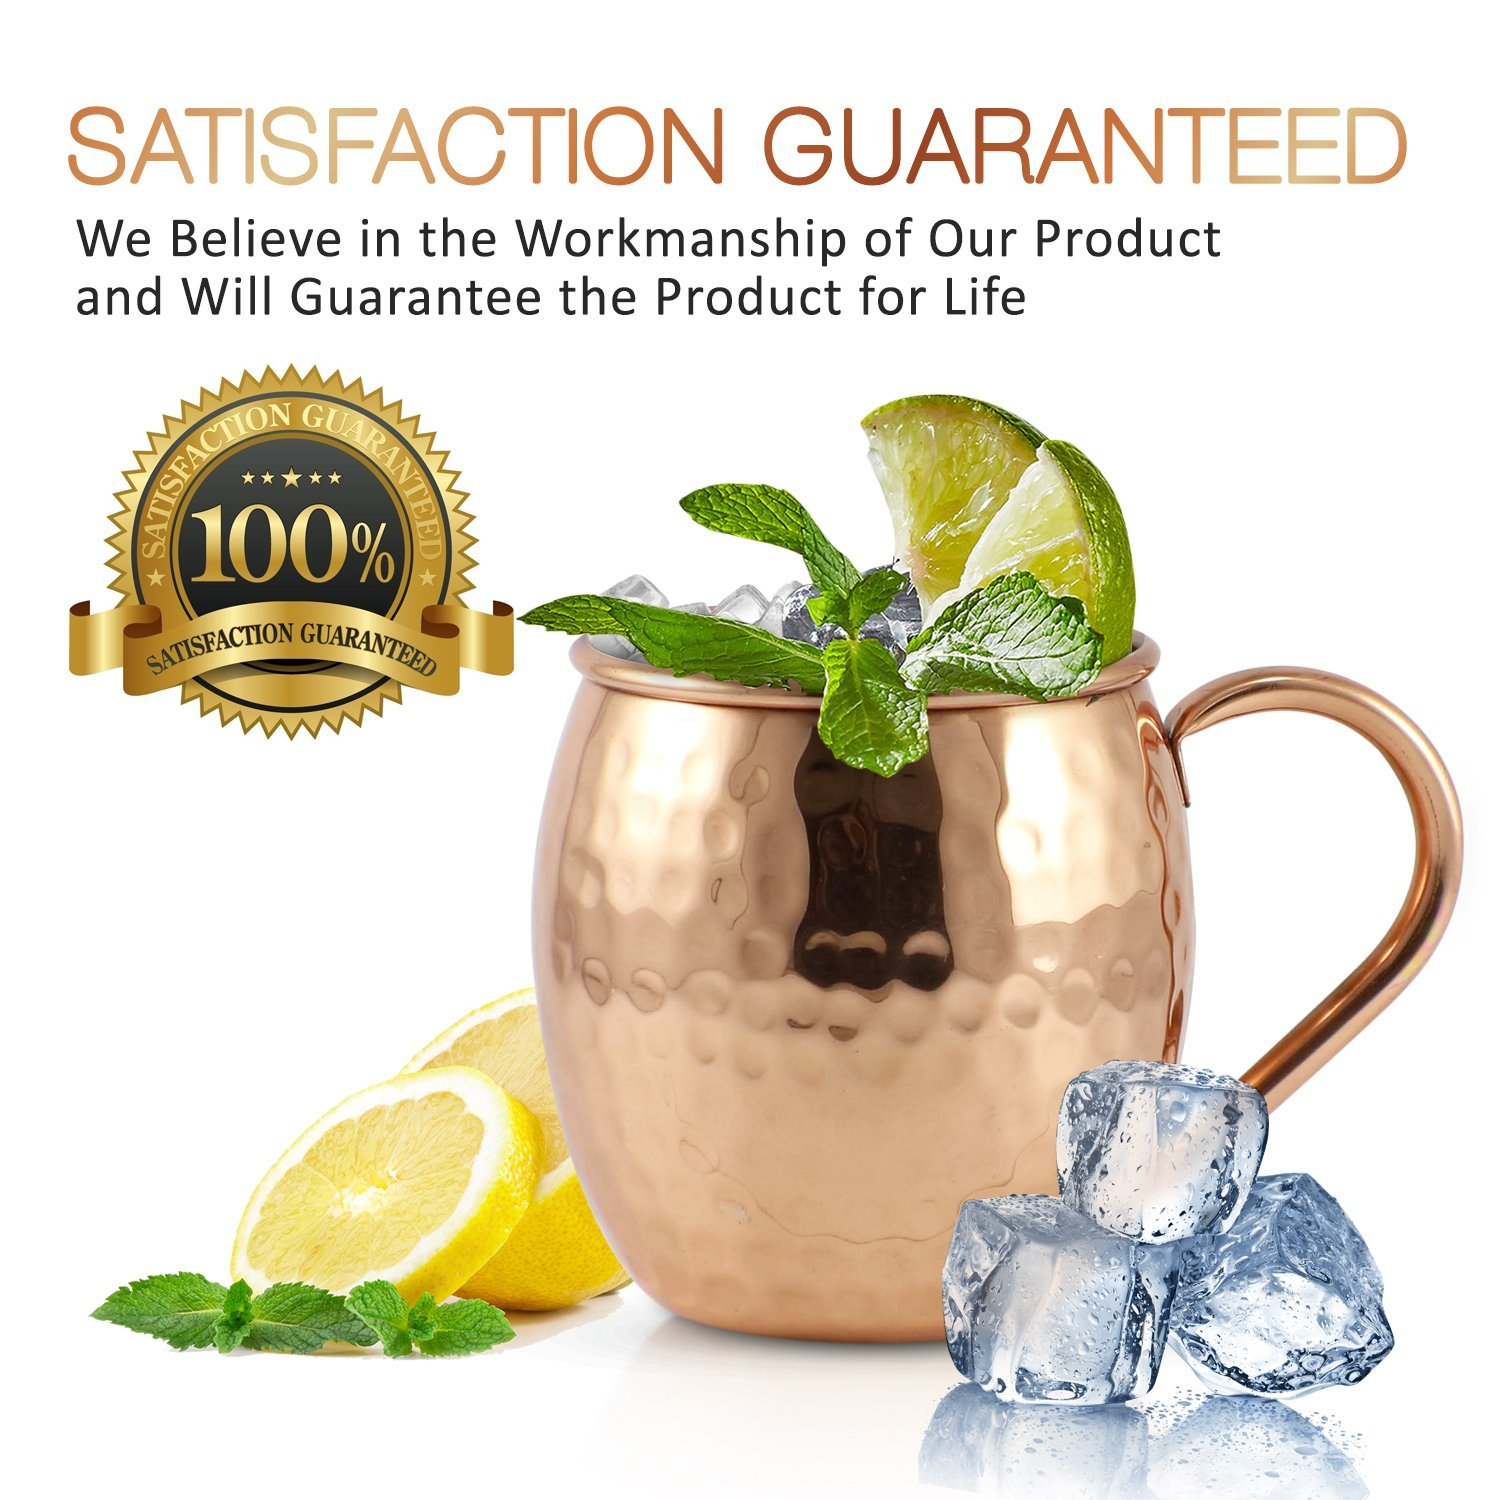 Mule Science Moscow Mule Copper Mugs - Set of 4 - 100% HANDCRAFTED - Pure Solid Copper Mugs 16 oz Gift Set with BONUS: Highest Quality Cocktail Copper Straws, Coasters and Shot Glass! by Advanced Mixology (Image #2)